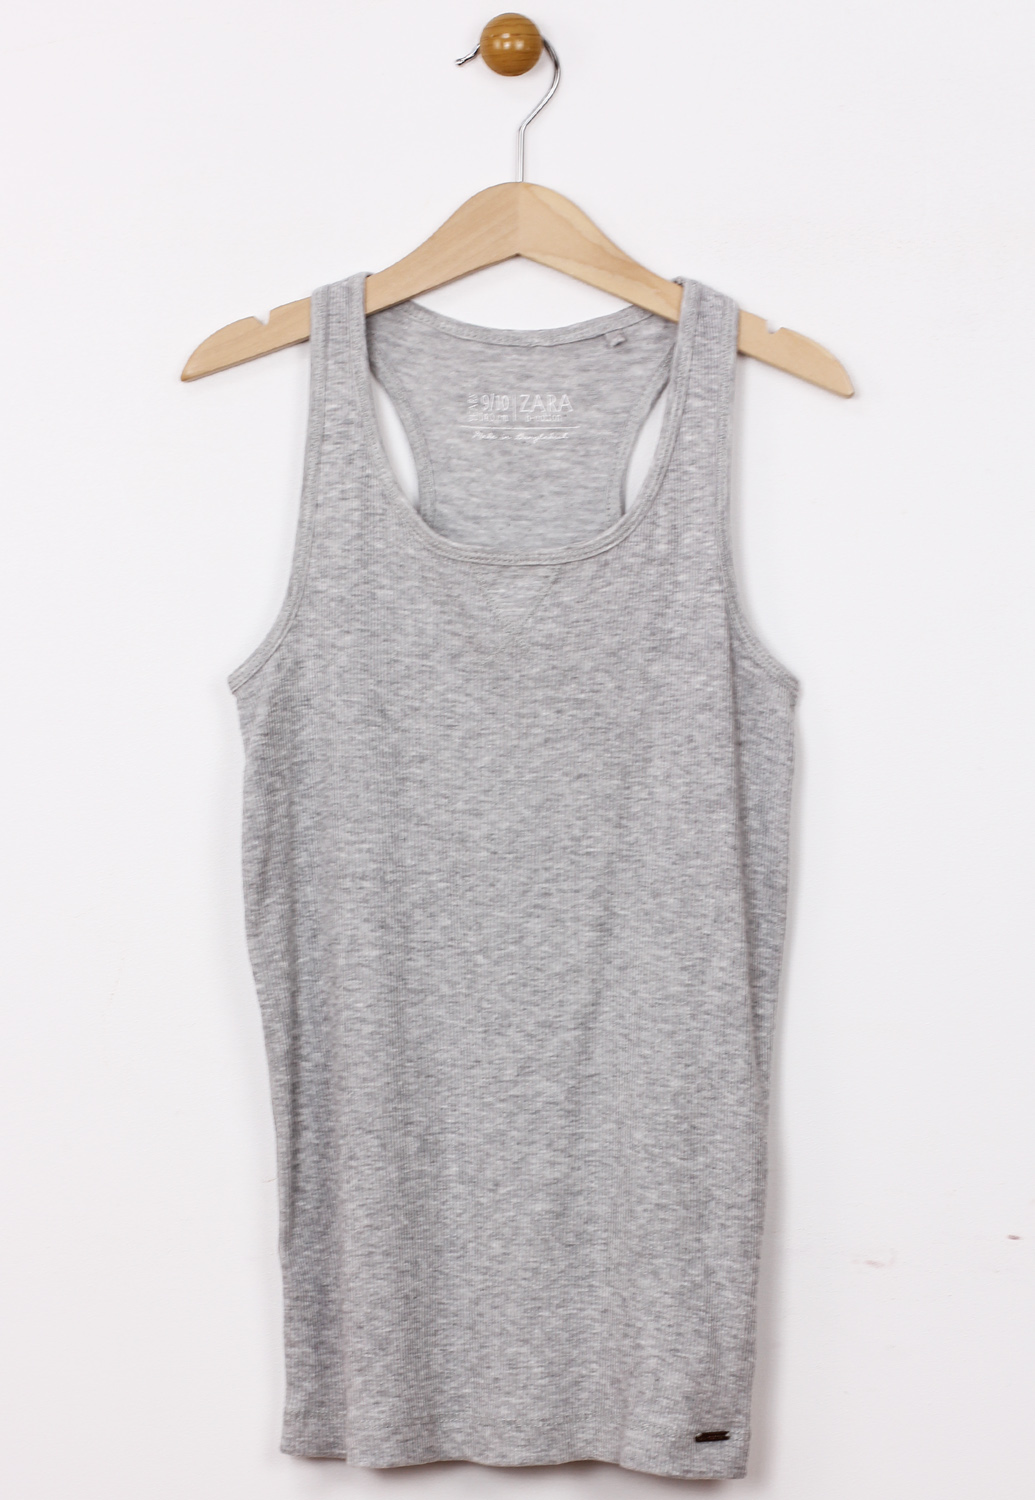 Maieu ZARA Basic Grey